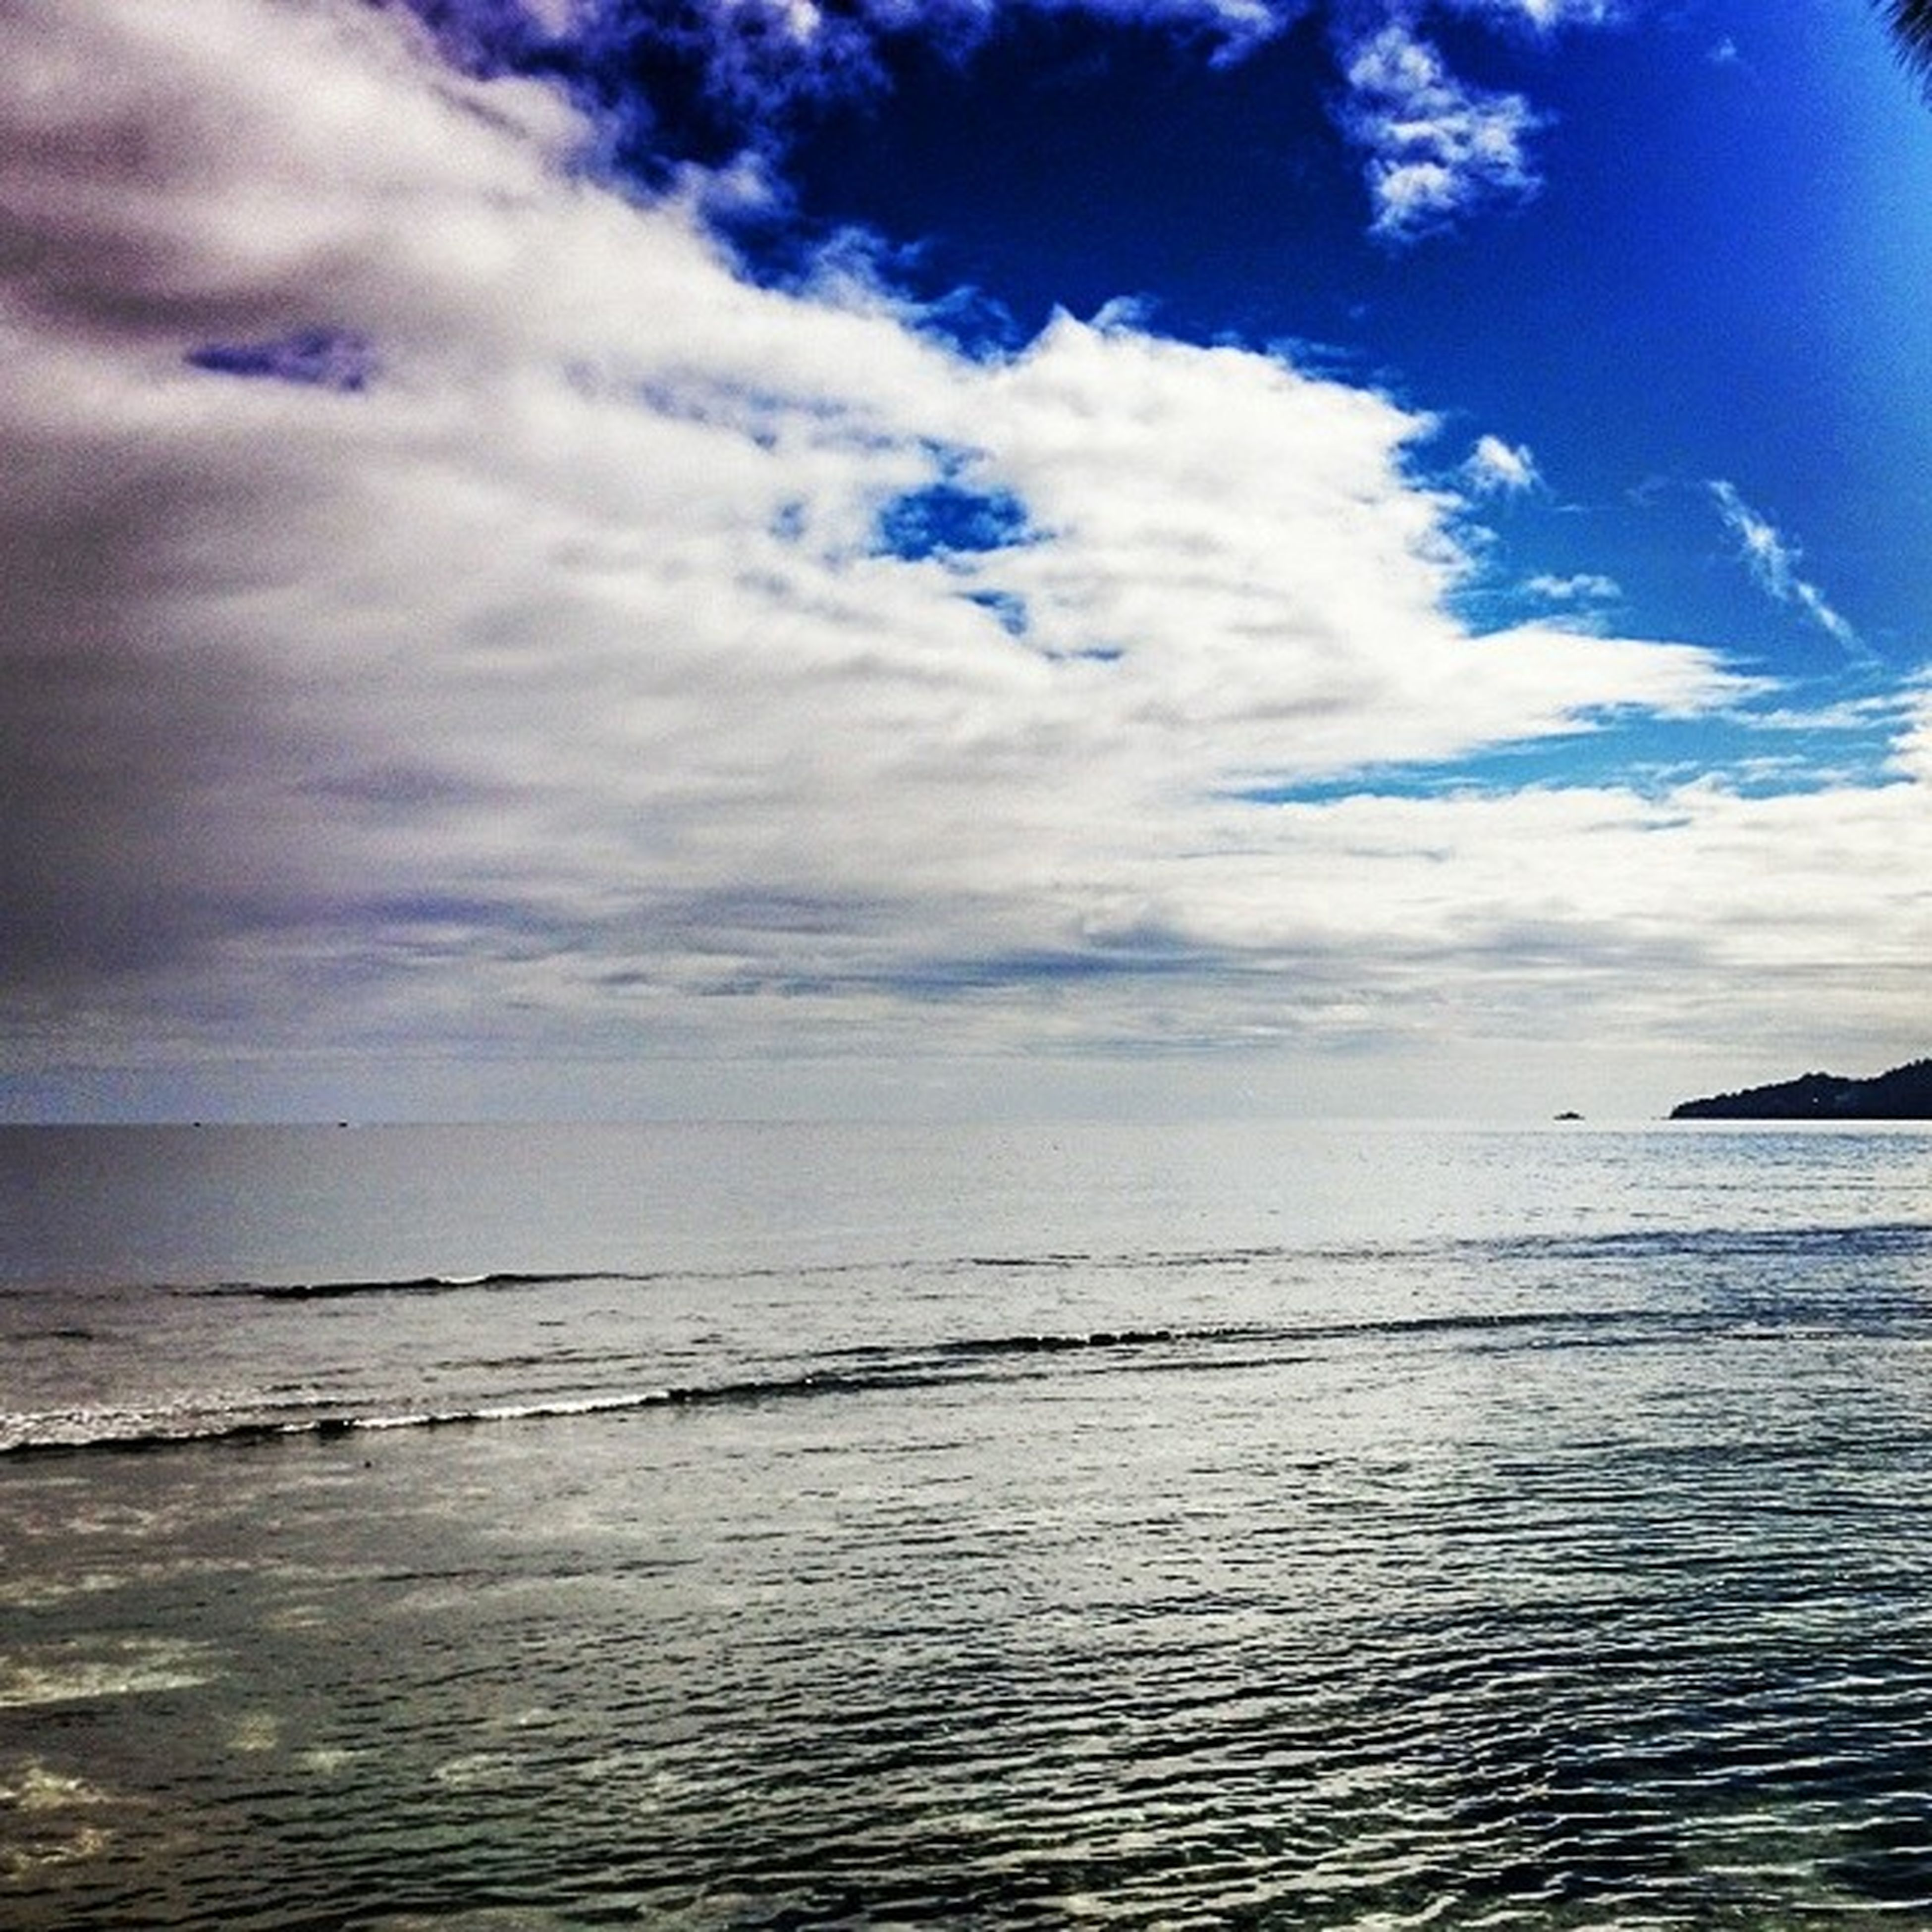 sea, horizon over water, water, sky, tranquil scene, scenics, tranquility, beauty in nature, cloud - sky, beach, cloud, nature, blue, waterfront, idyllic, seascape, cloudy, shore, calm, rippled